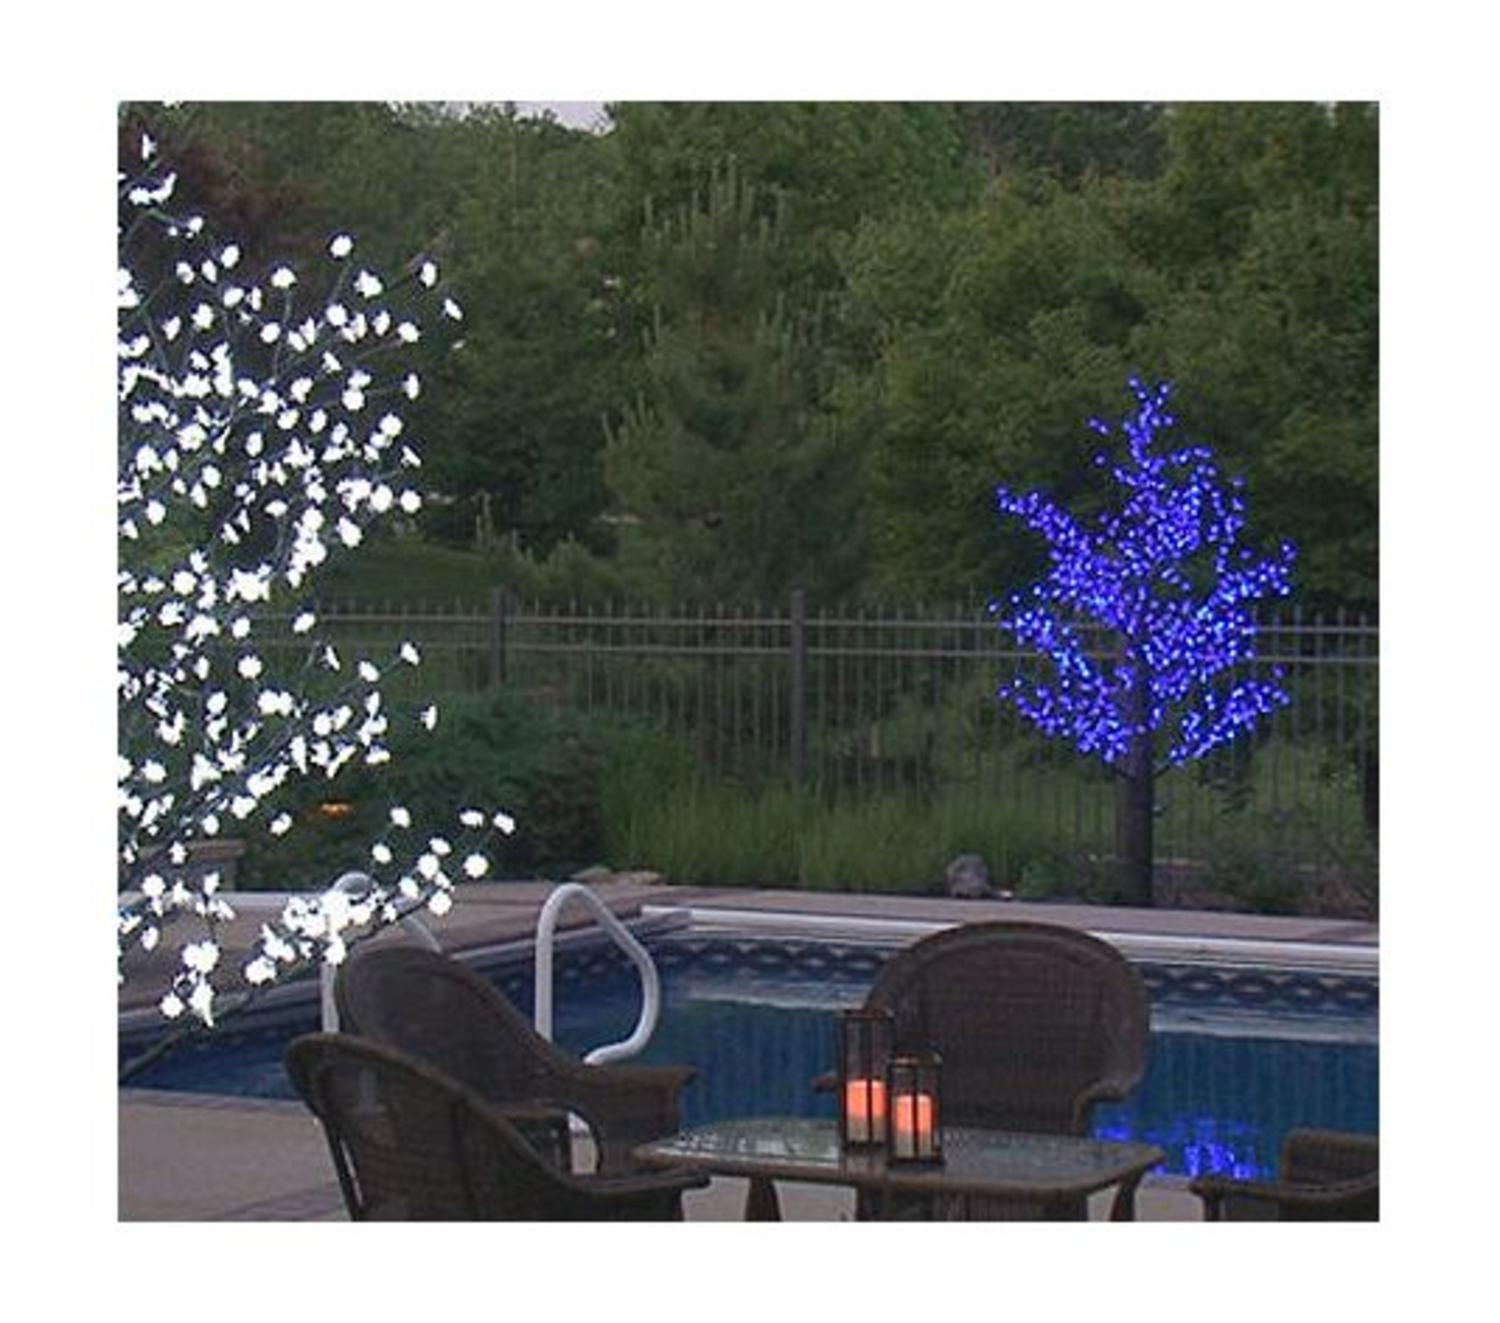 85 pre lit led outdoor christmas tree decoration blue flower lights - Pre Lit Outdoor Christmas Tree